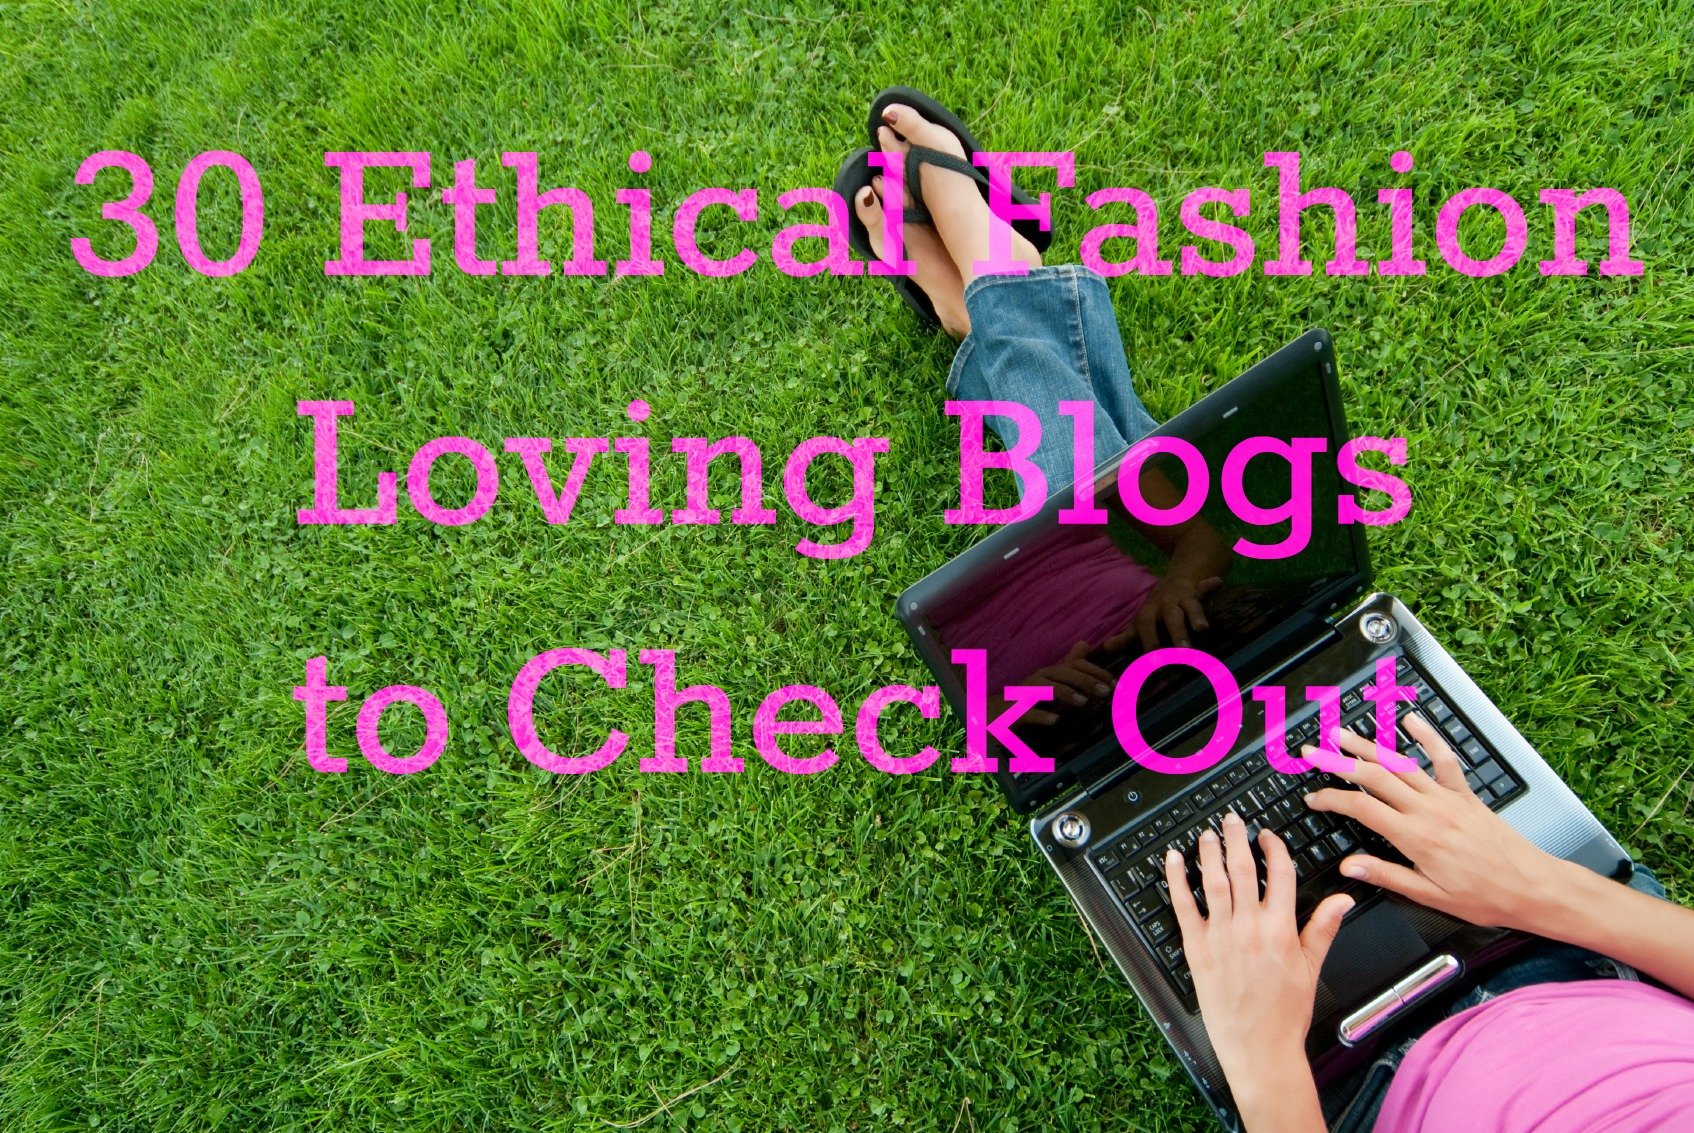 ethical fashion blogs 30 Ethical Fashion Loving Blogs to Check Out